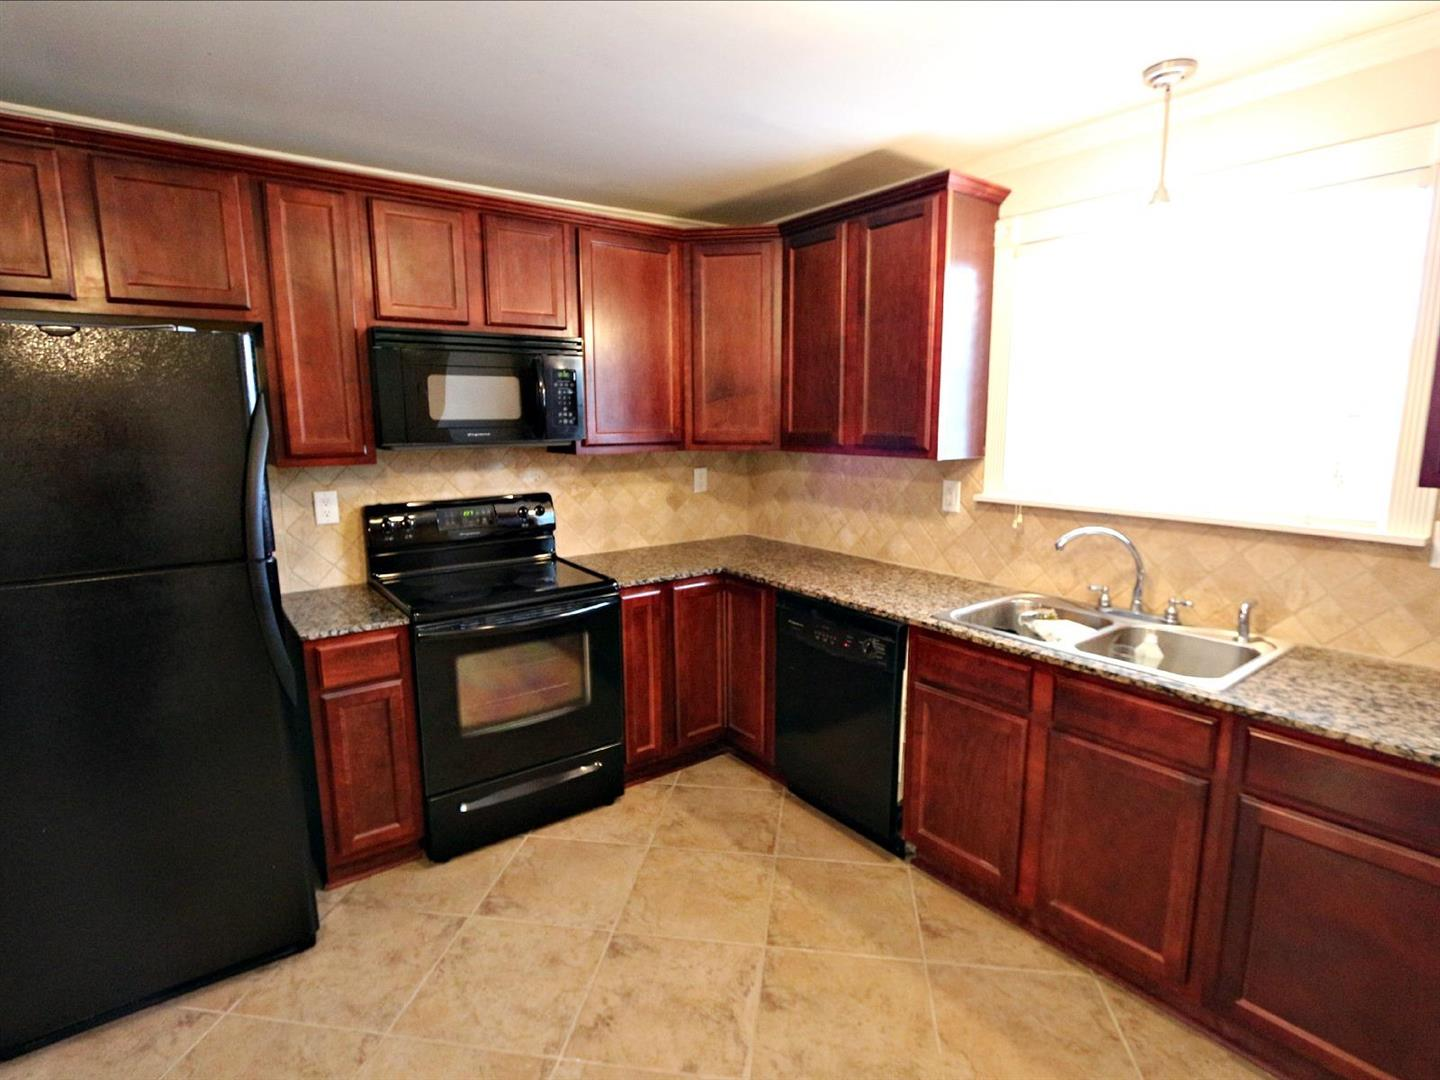 3013Ridgelake203,Kitchen1.jpg